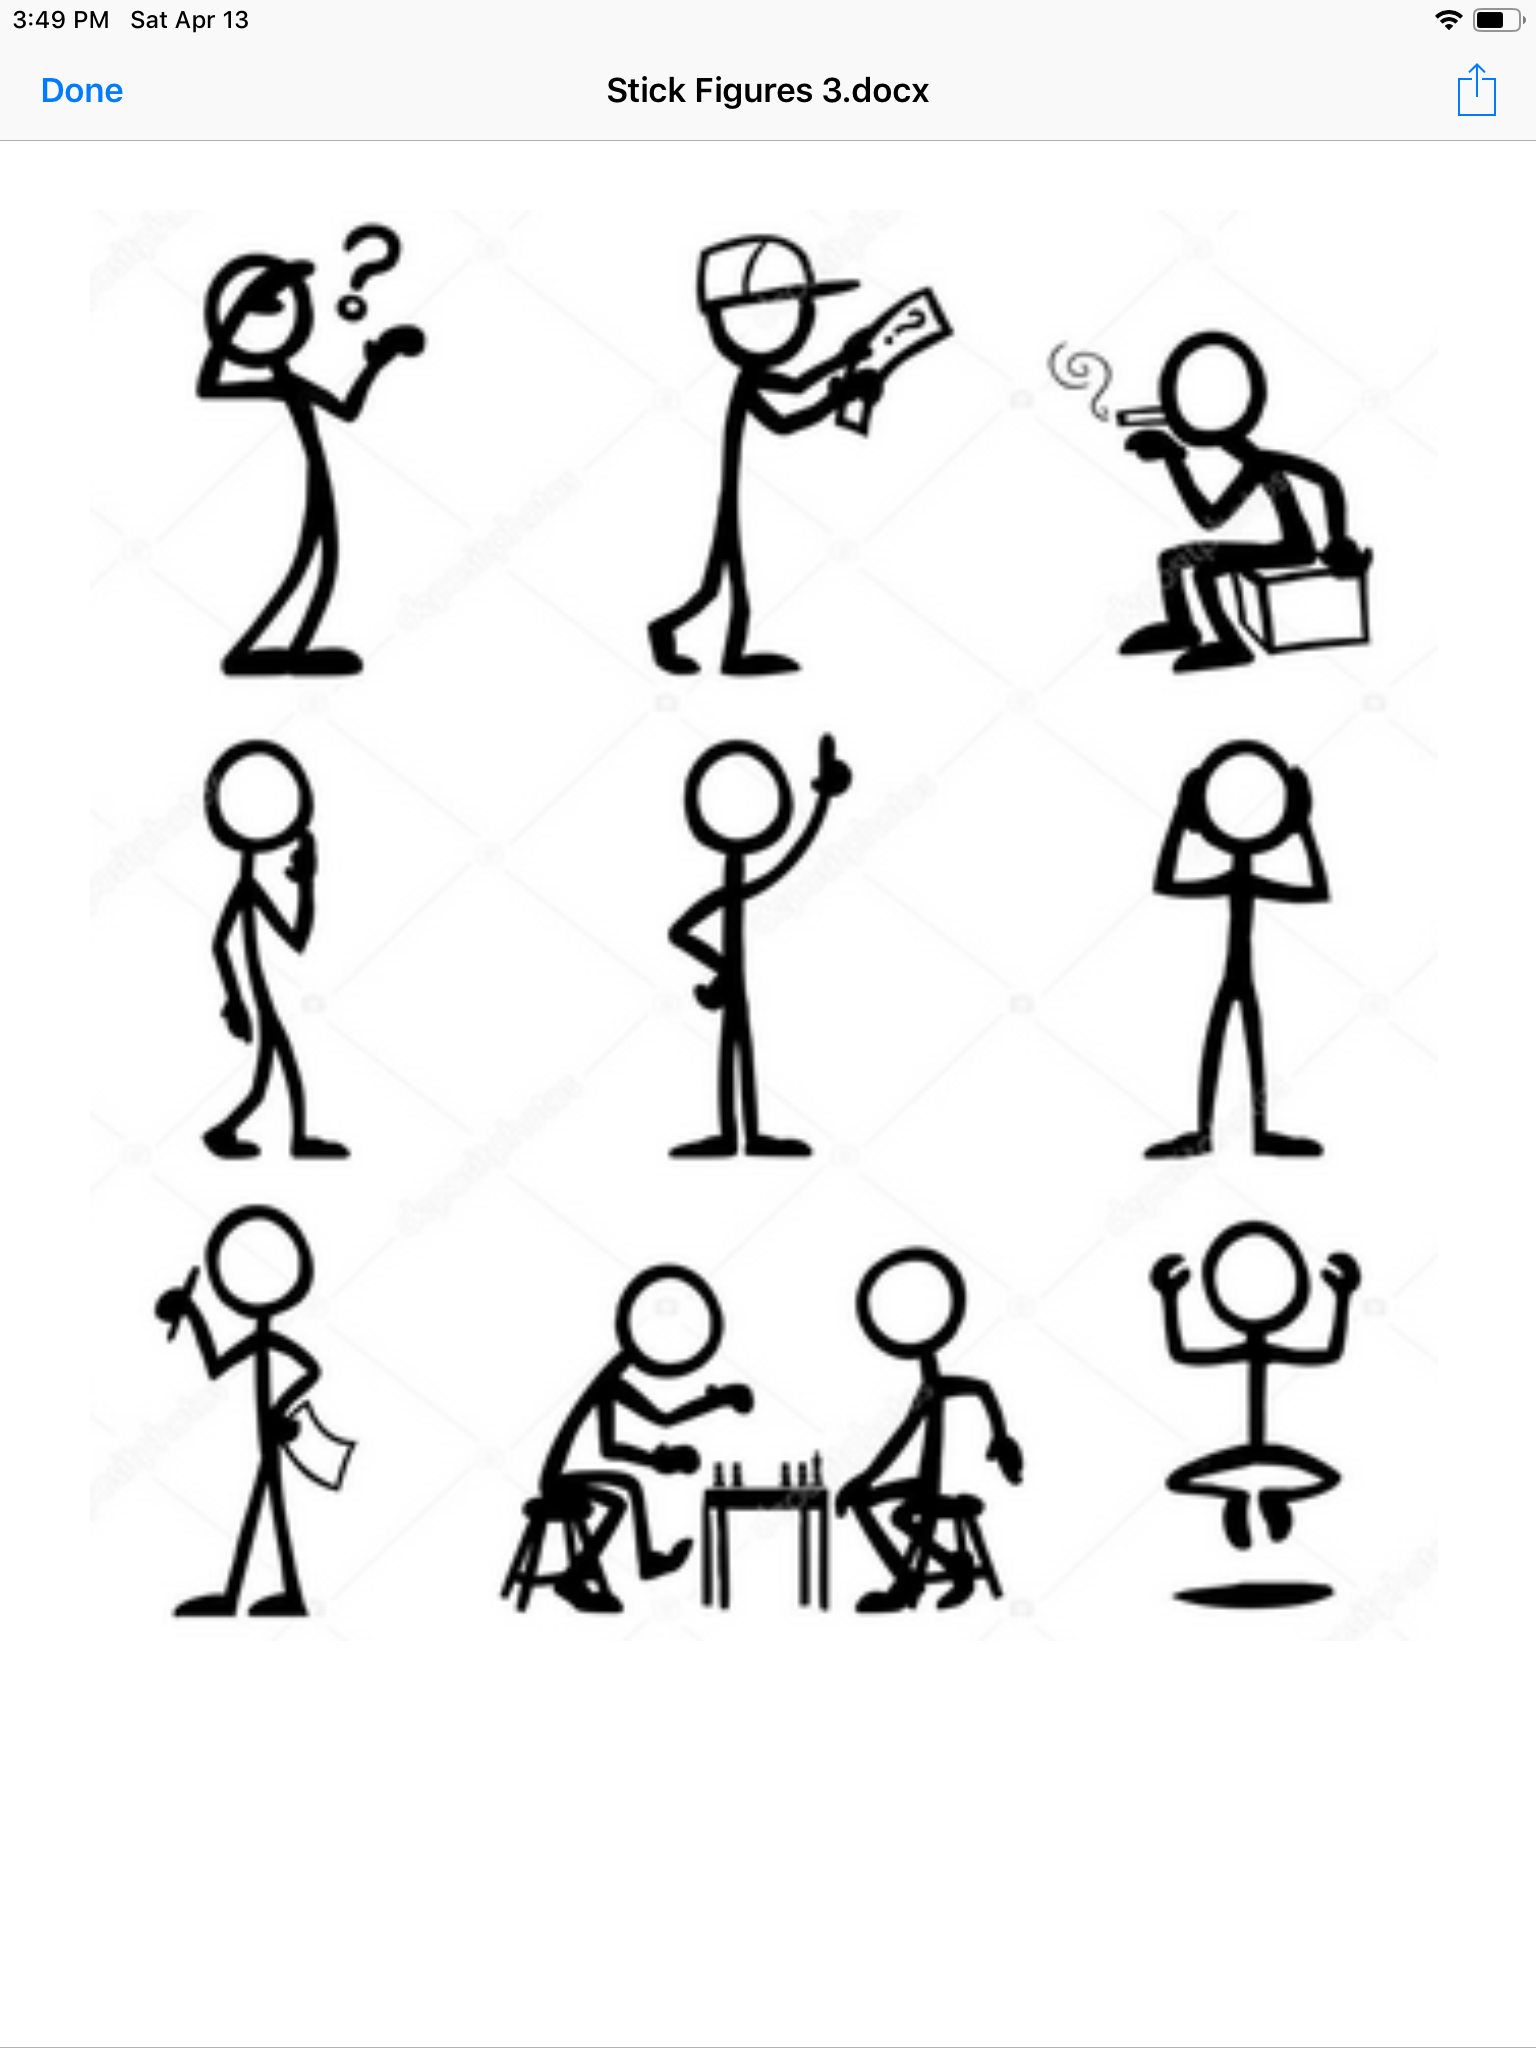 Pin By Merci On Silhouette Cameo 3 Stick Figure Drawing Stick Men Drawings Stick Figures